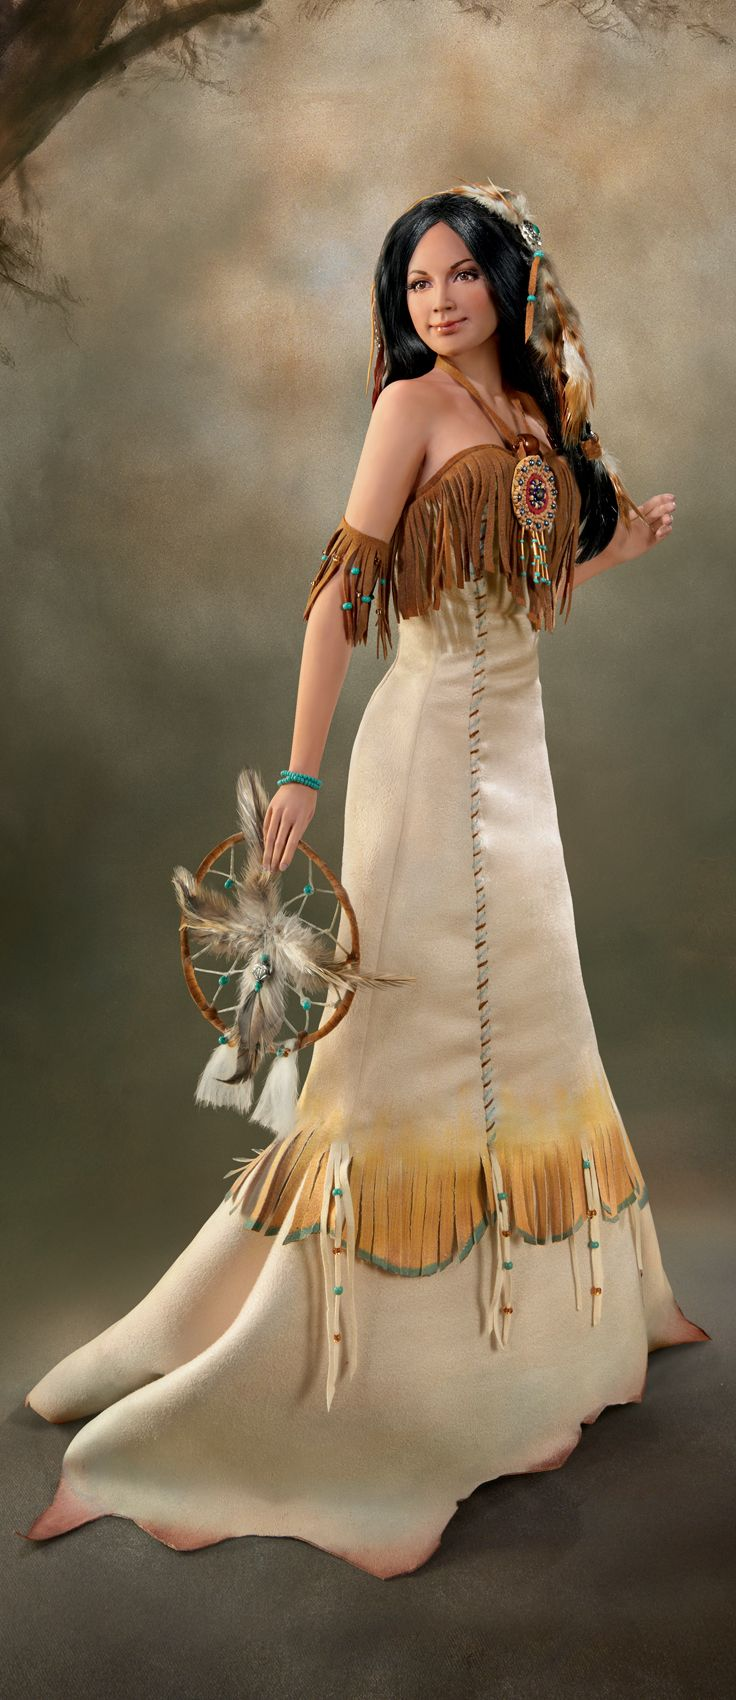 Handcrafted porcelain bride wears intricately tailored faux buckskin gown with beading and feathers.